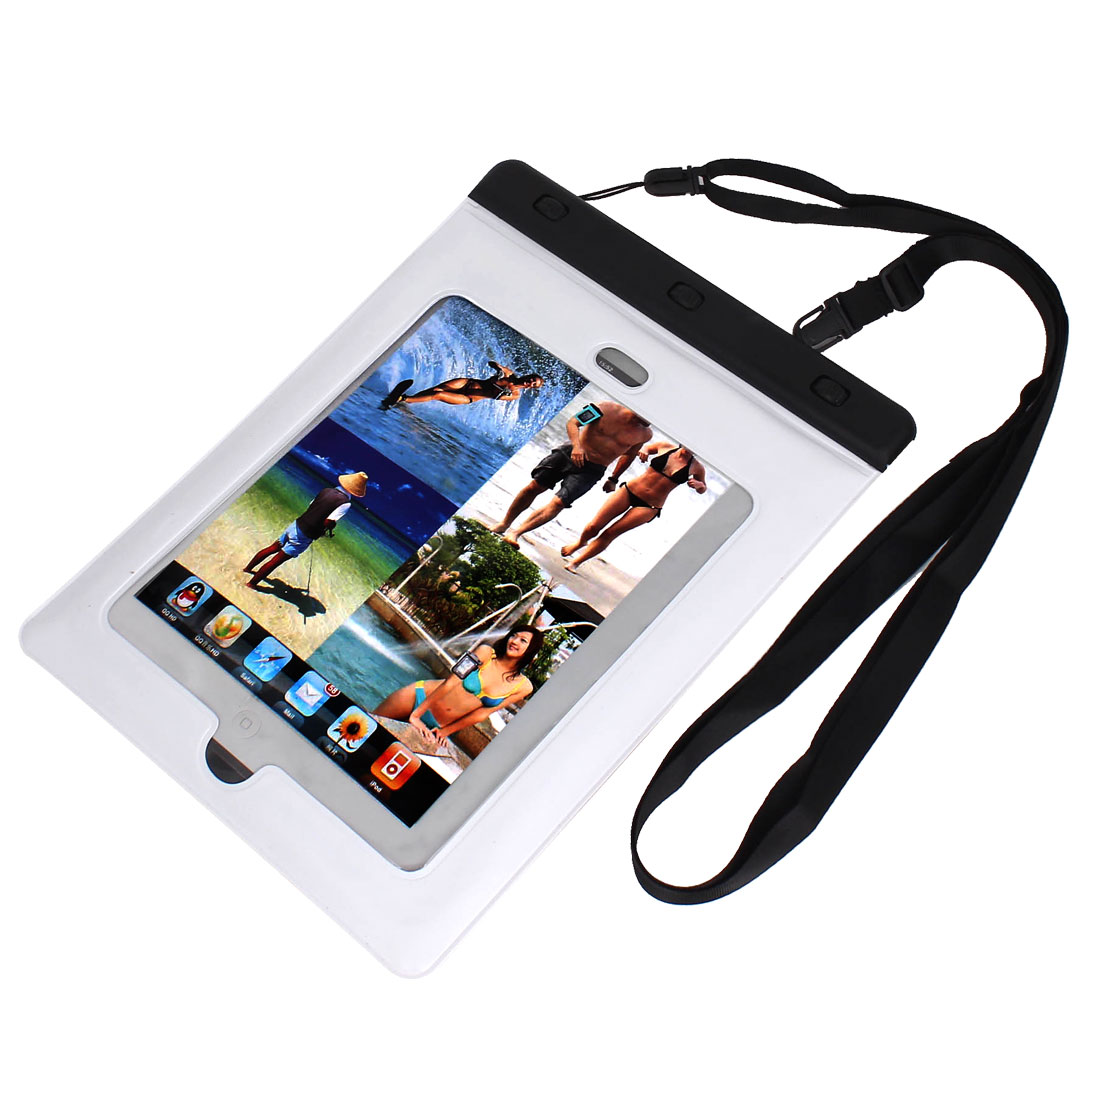 PVC Waterproof Skin Case Cover Dry Bag Protector White for iPad Mini